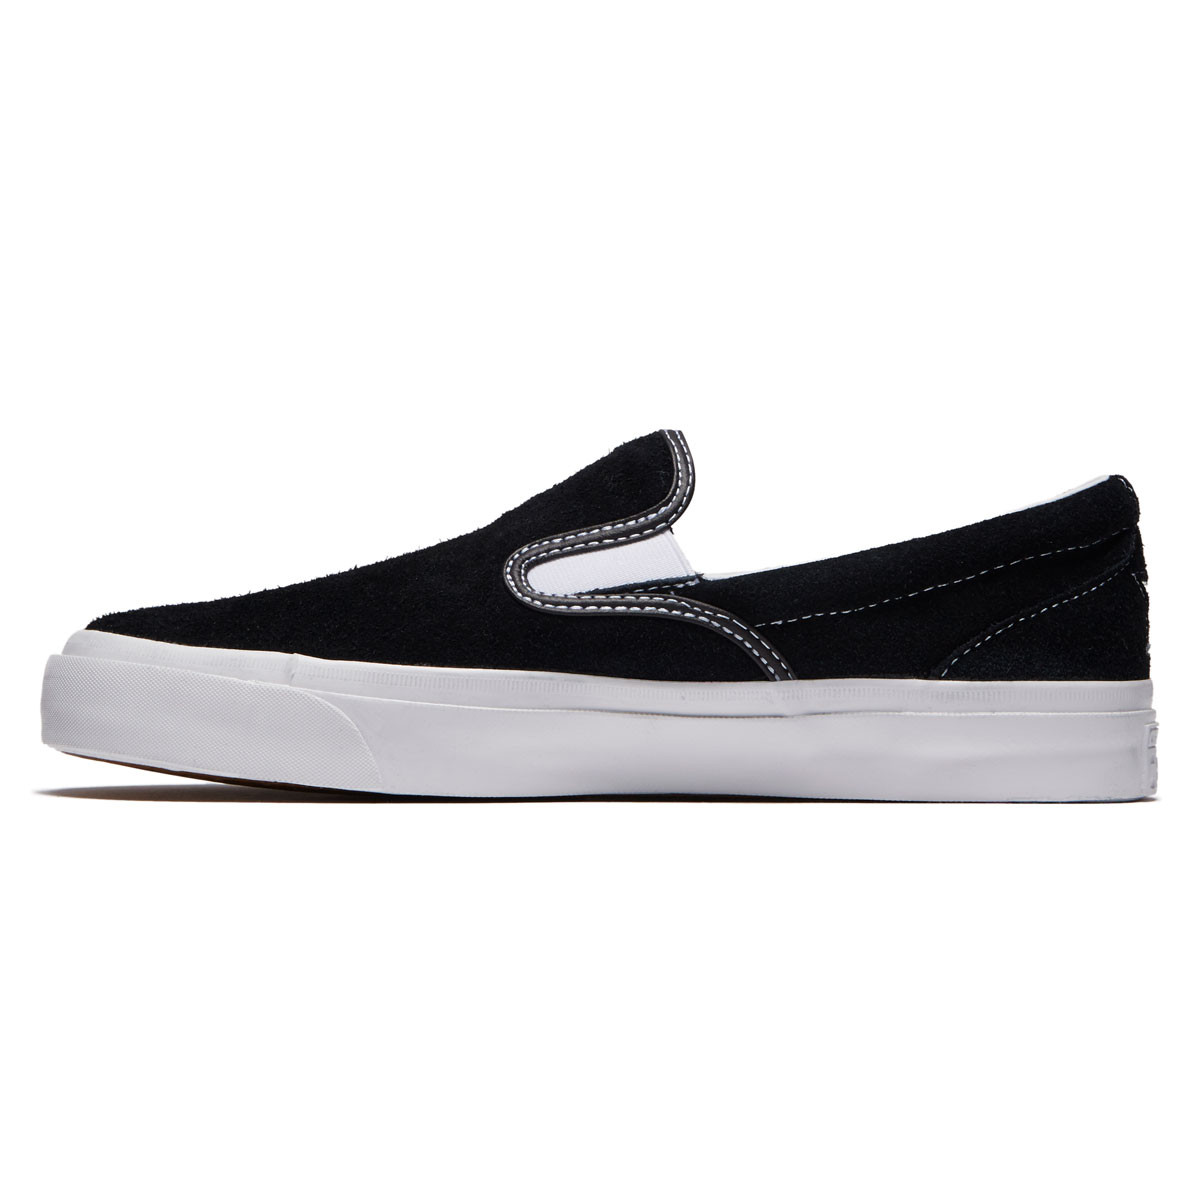 2cc50da0d6c Converse One Star CC Slip Shoes - Black White White - 7.0